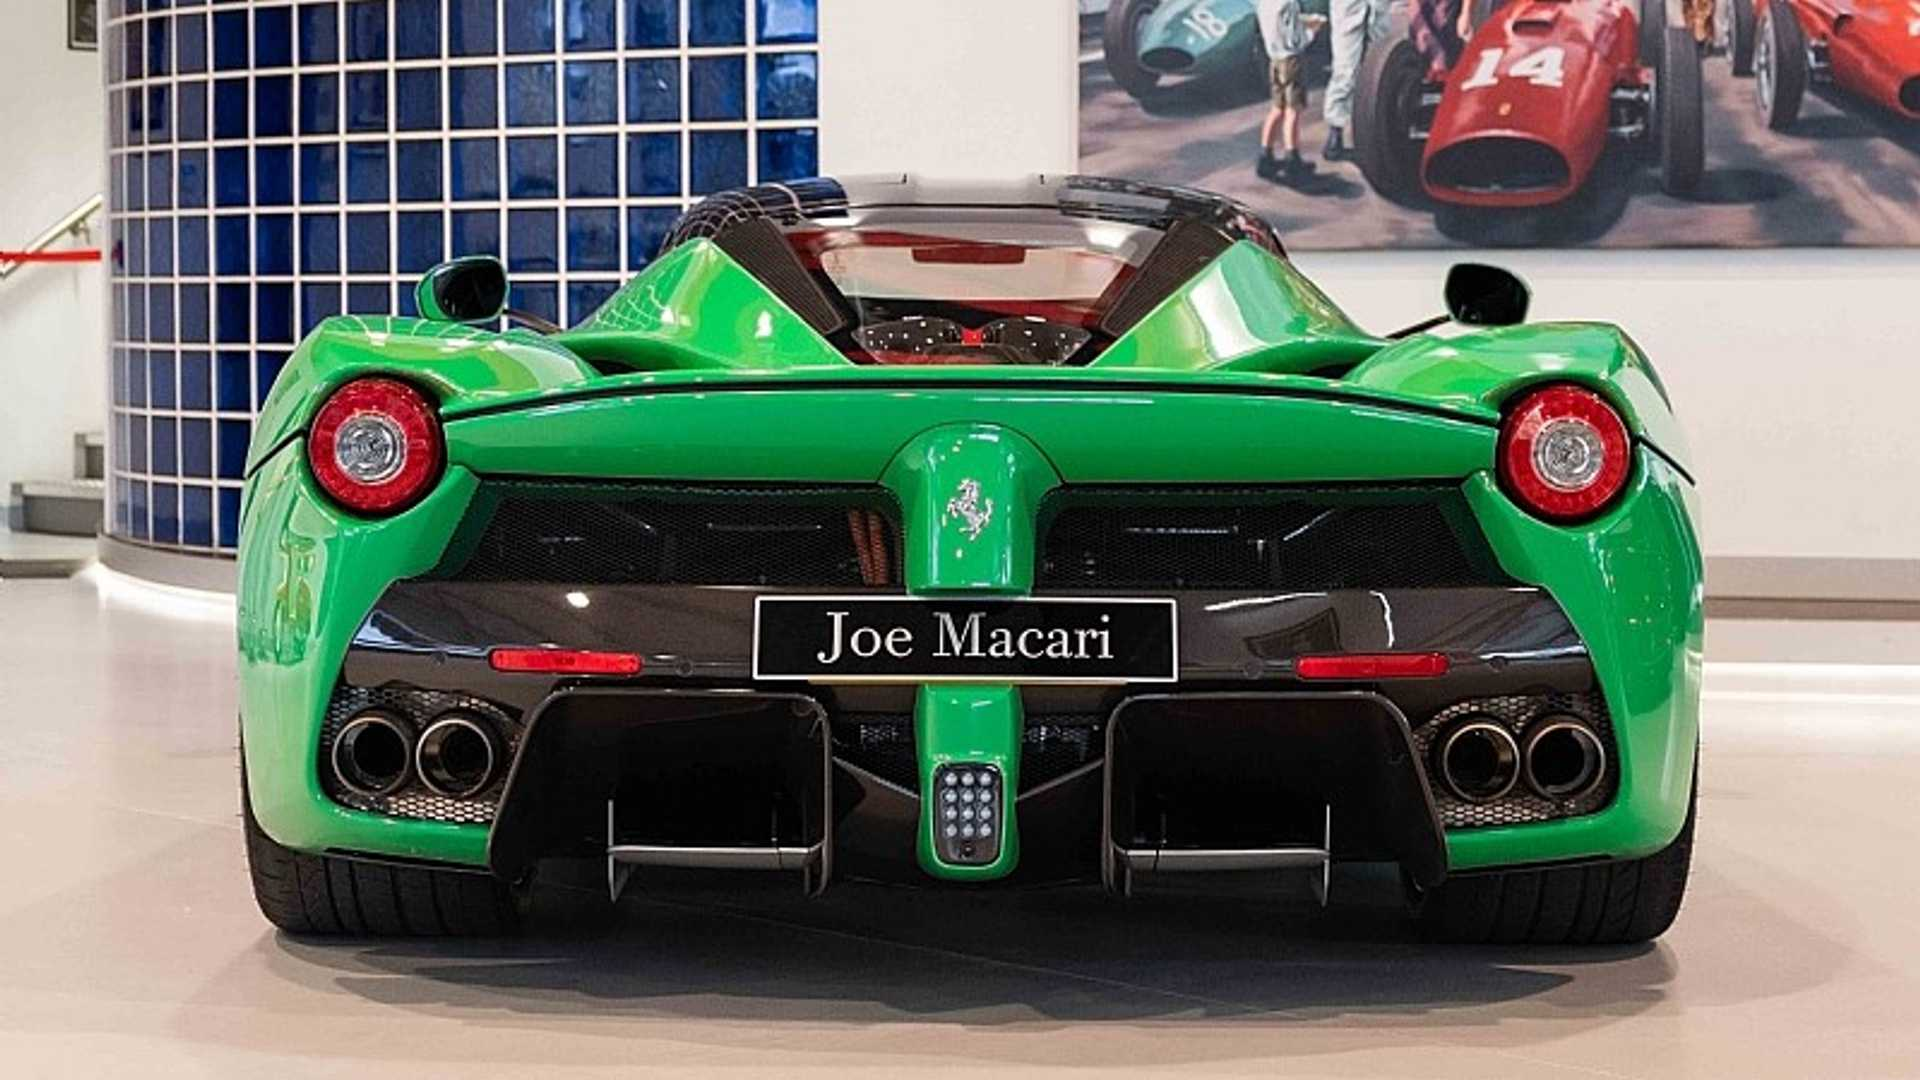 Jay Kays Green Laferrari Is For Sale